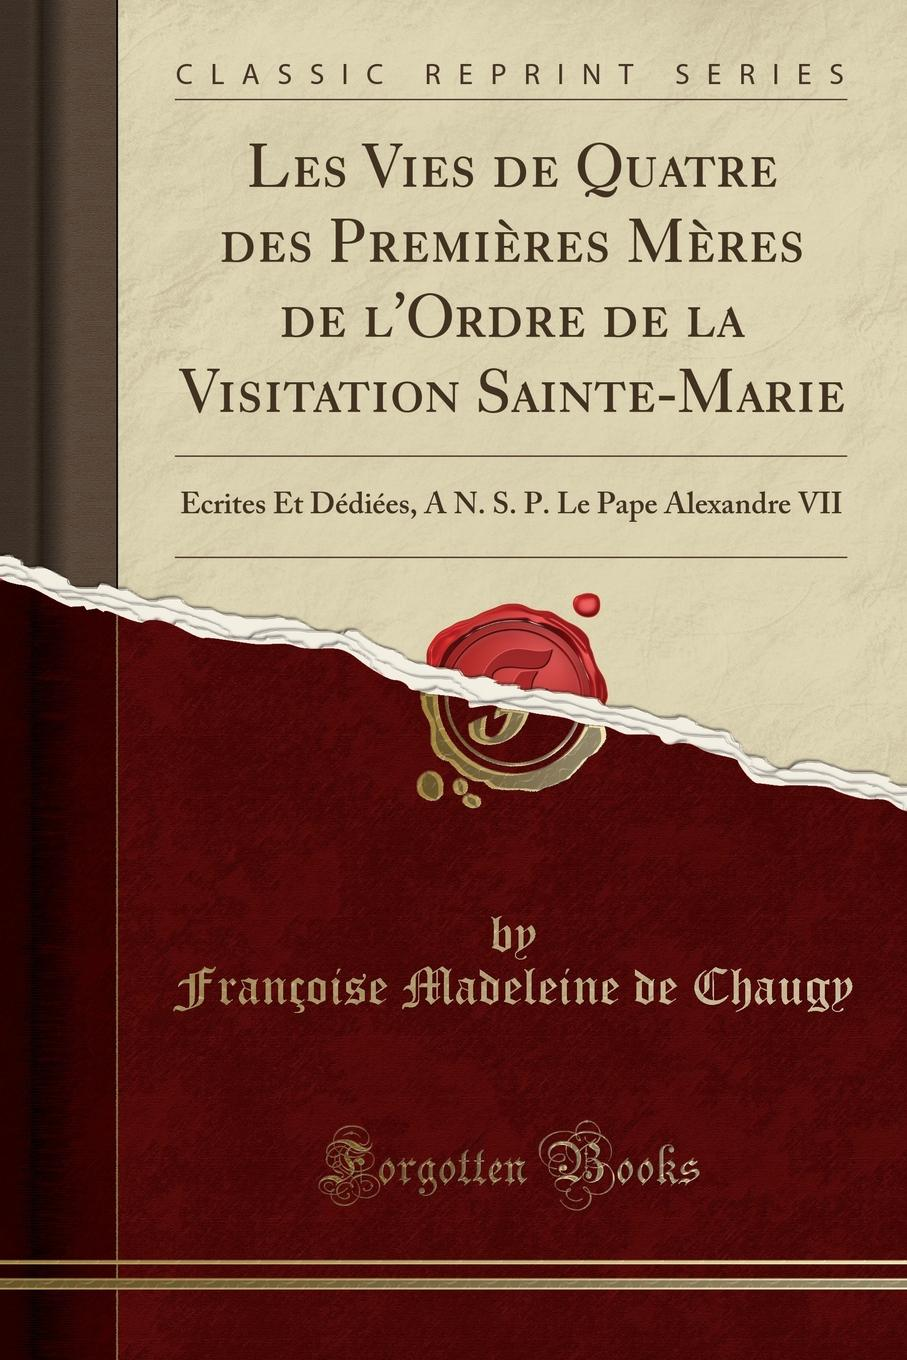 Françoise Madeleine de Chaugy Les Vies de Quatre des Premieres Meres de l.Ordre de la Visitation Sainte-Marie. Ecrites Et Dediees, A N. S. P. Le Pape Alexandre VII (Classic Reprint) баффи санти мари buffy sainte marie many a mile